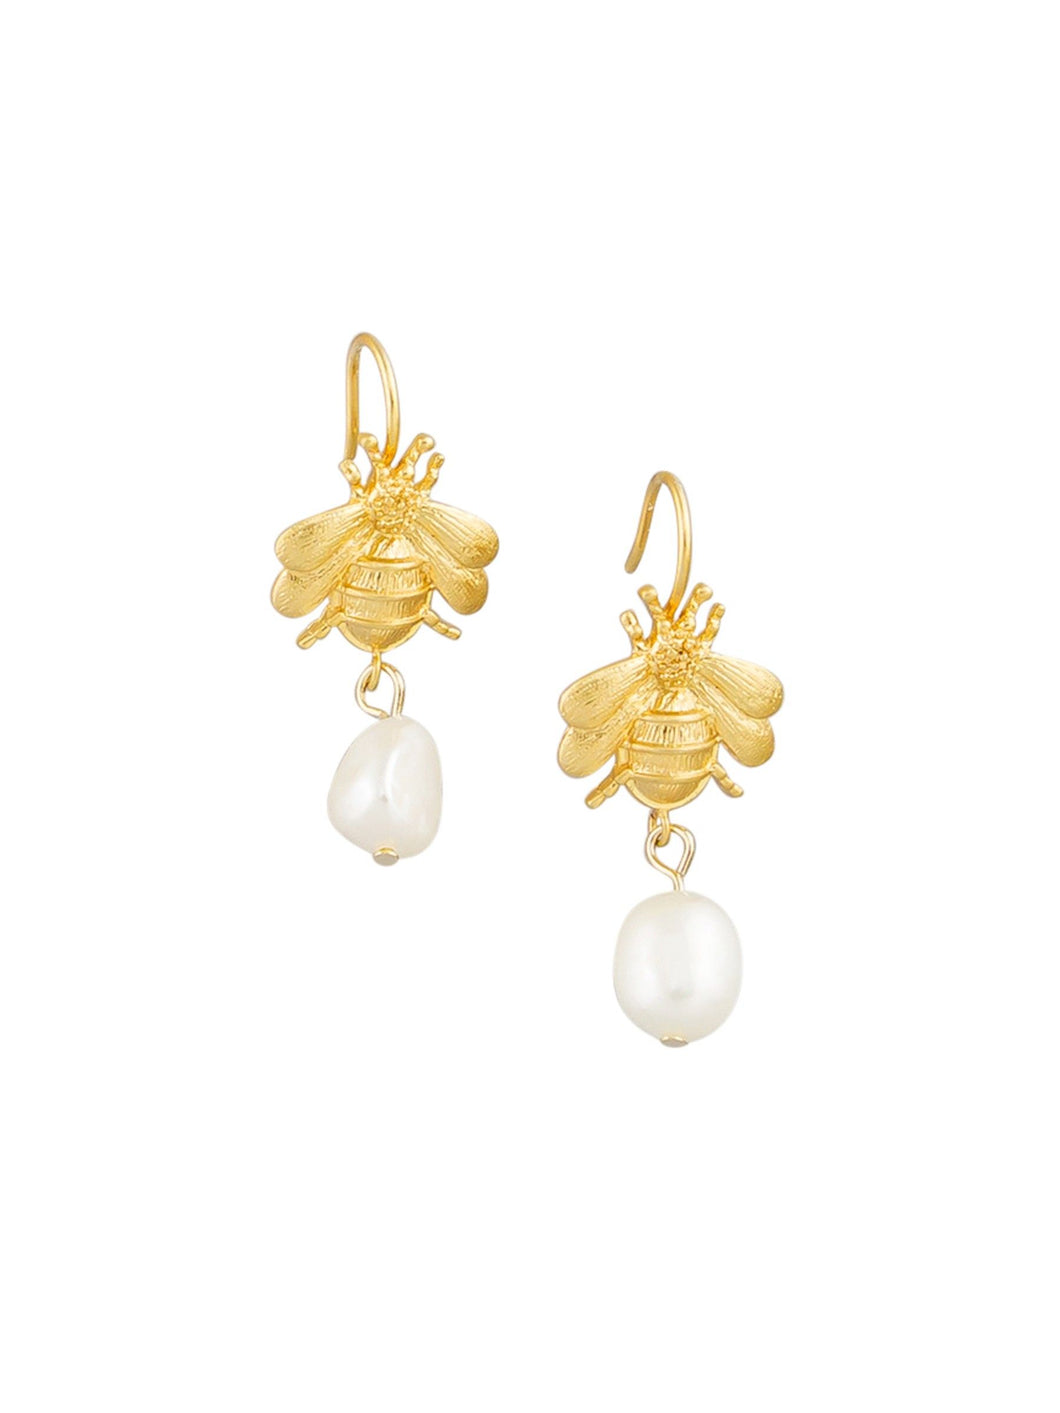 Golden bee and pearl earrings